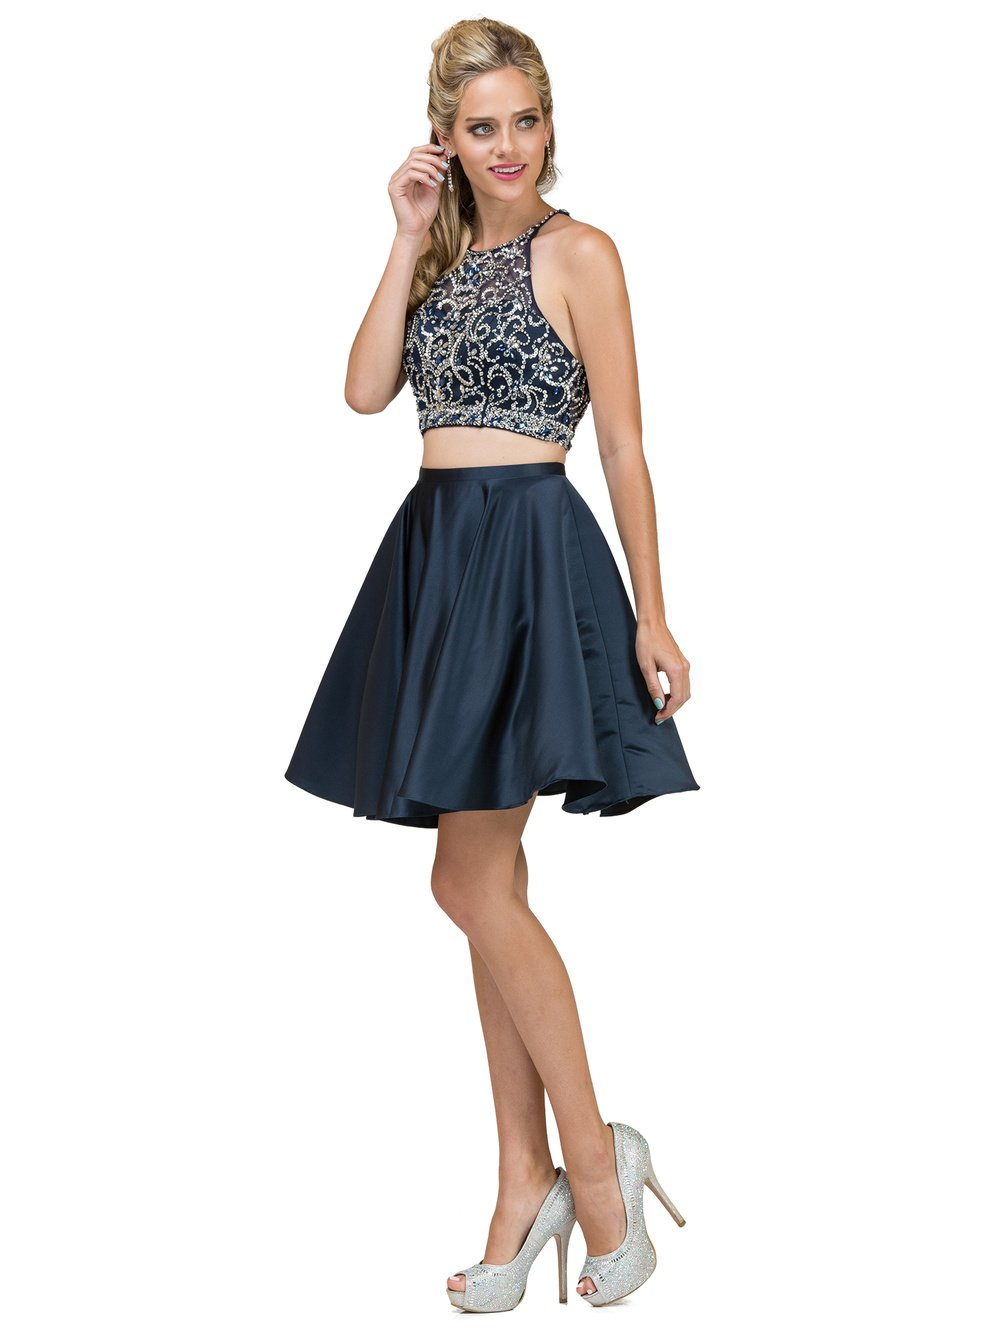 Short Two-Piece Knee-Length Homecoming Dress